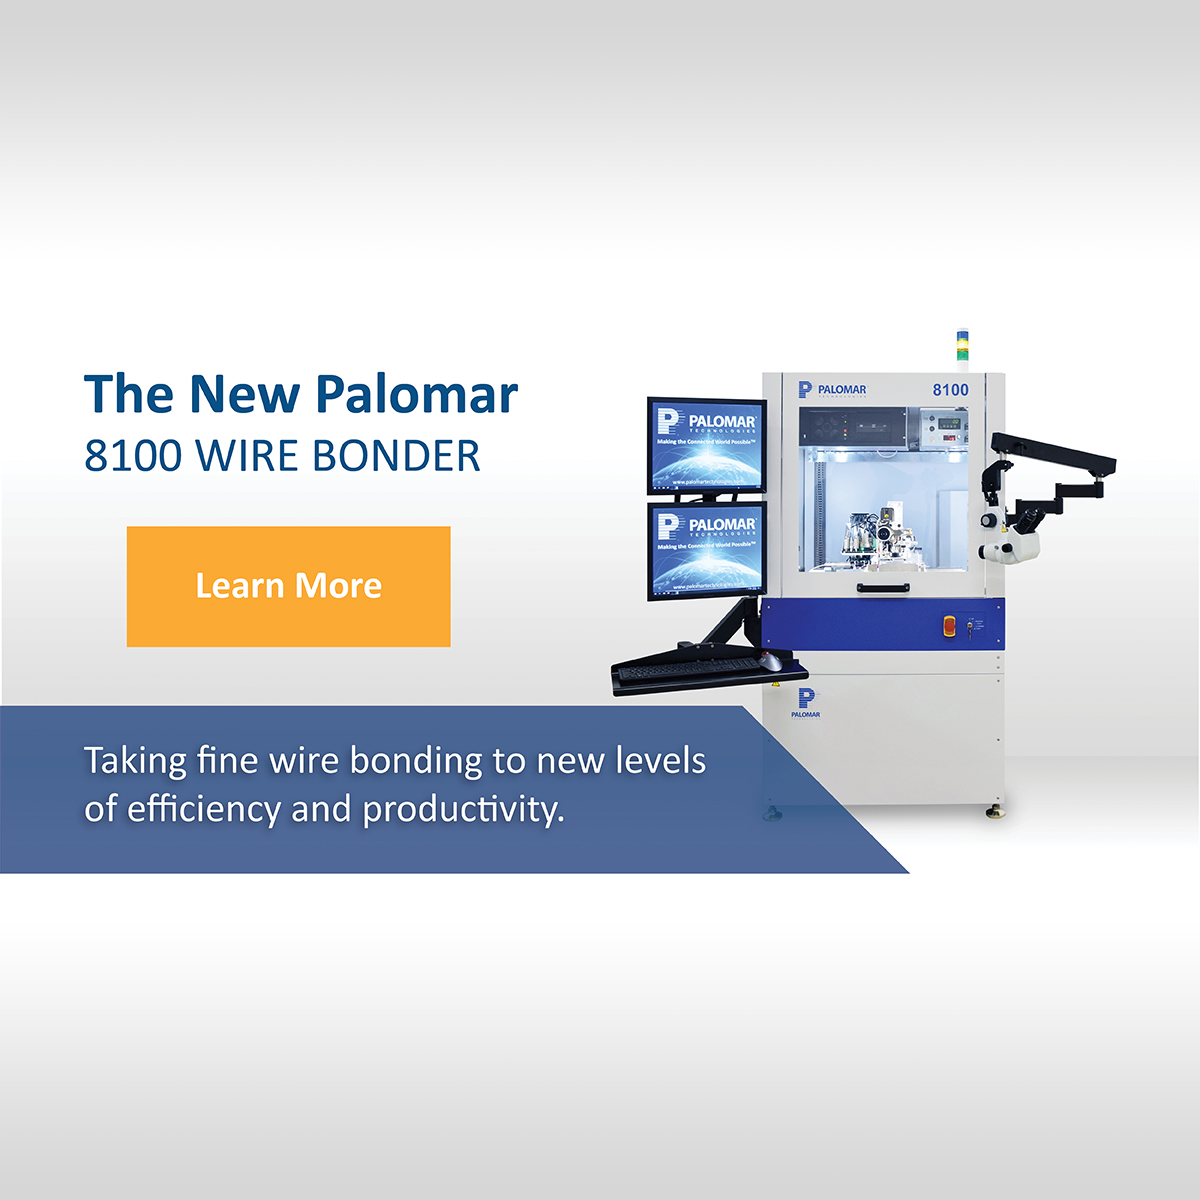 Palomar Technologies new 8100 Wire Bonder Increases Productivity and Efficiency